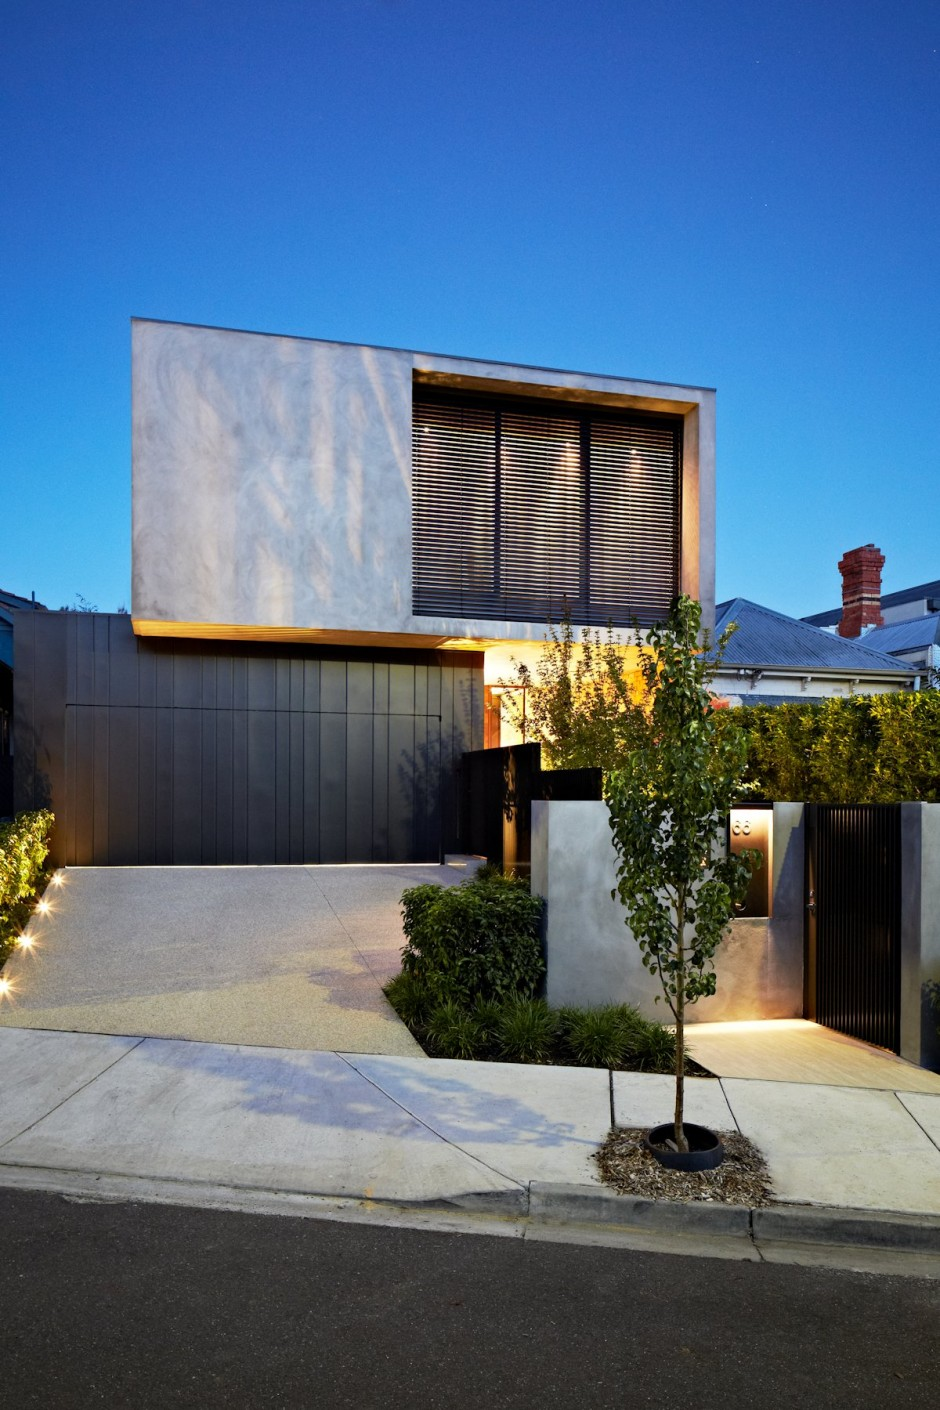 Inspiring Contemporary Homes Australia Photos - Image design house ...